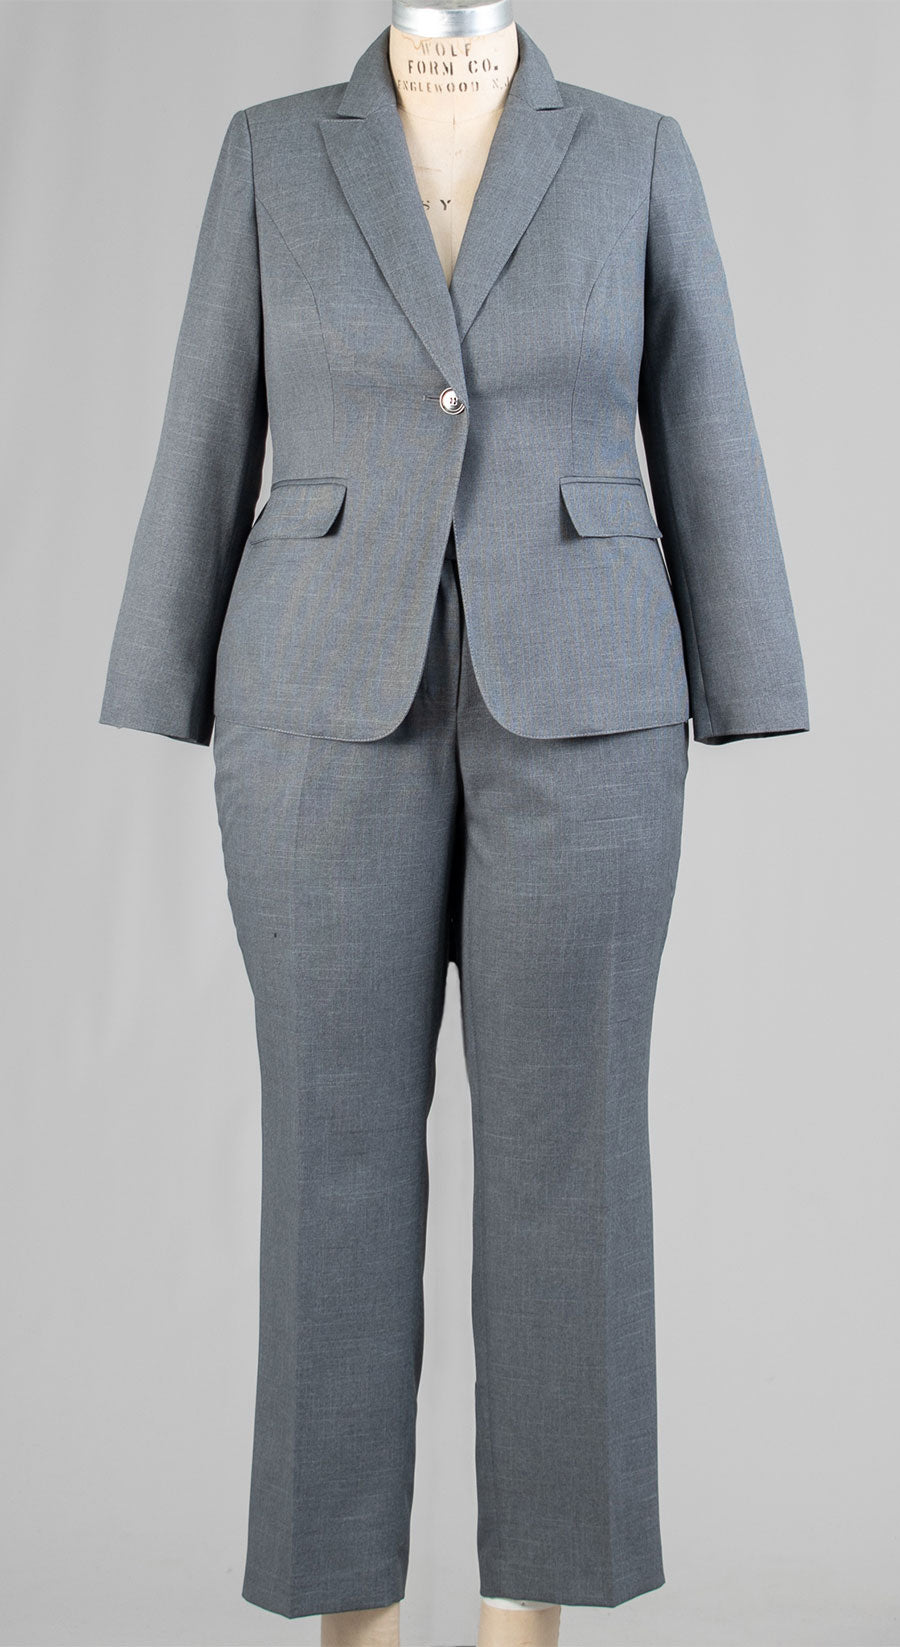 John Meyer Pant Suit 804C825 - Church Suits For Less